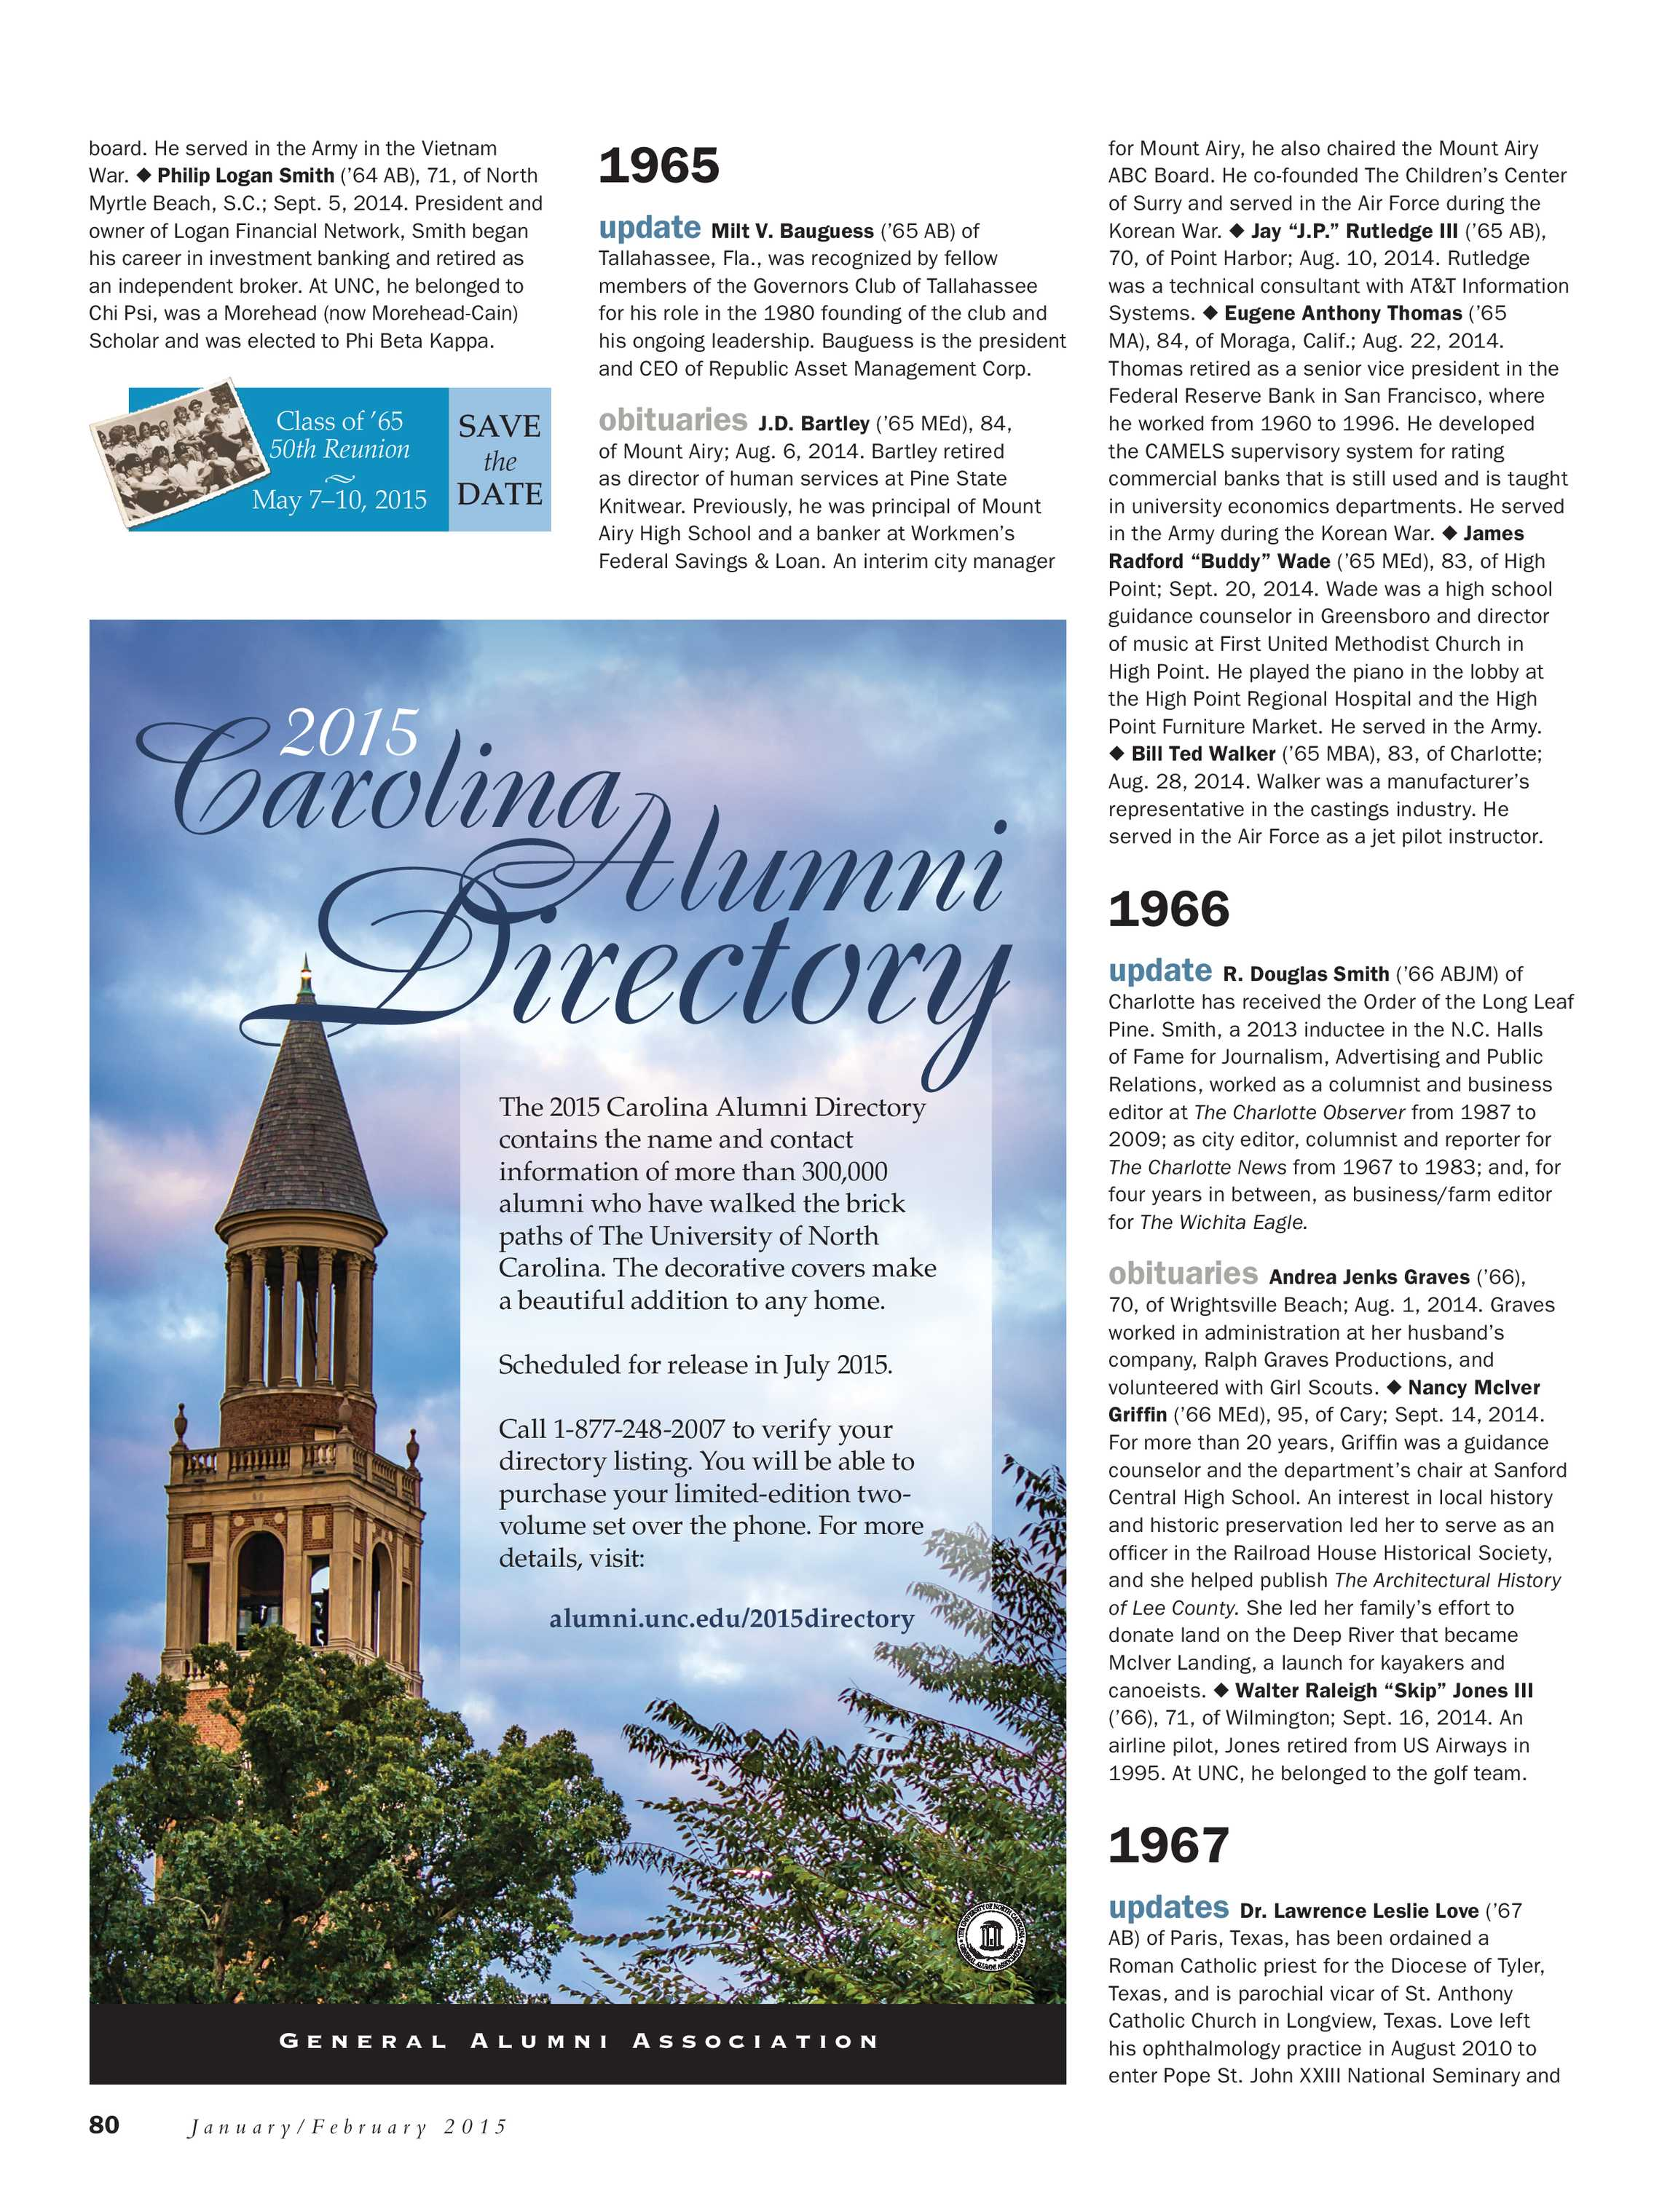 Carolina Alumni Review - January/February 2015 - page 66